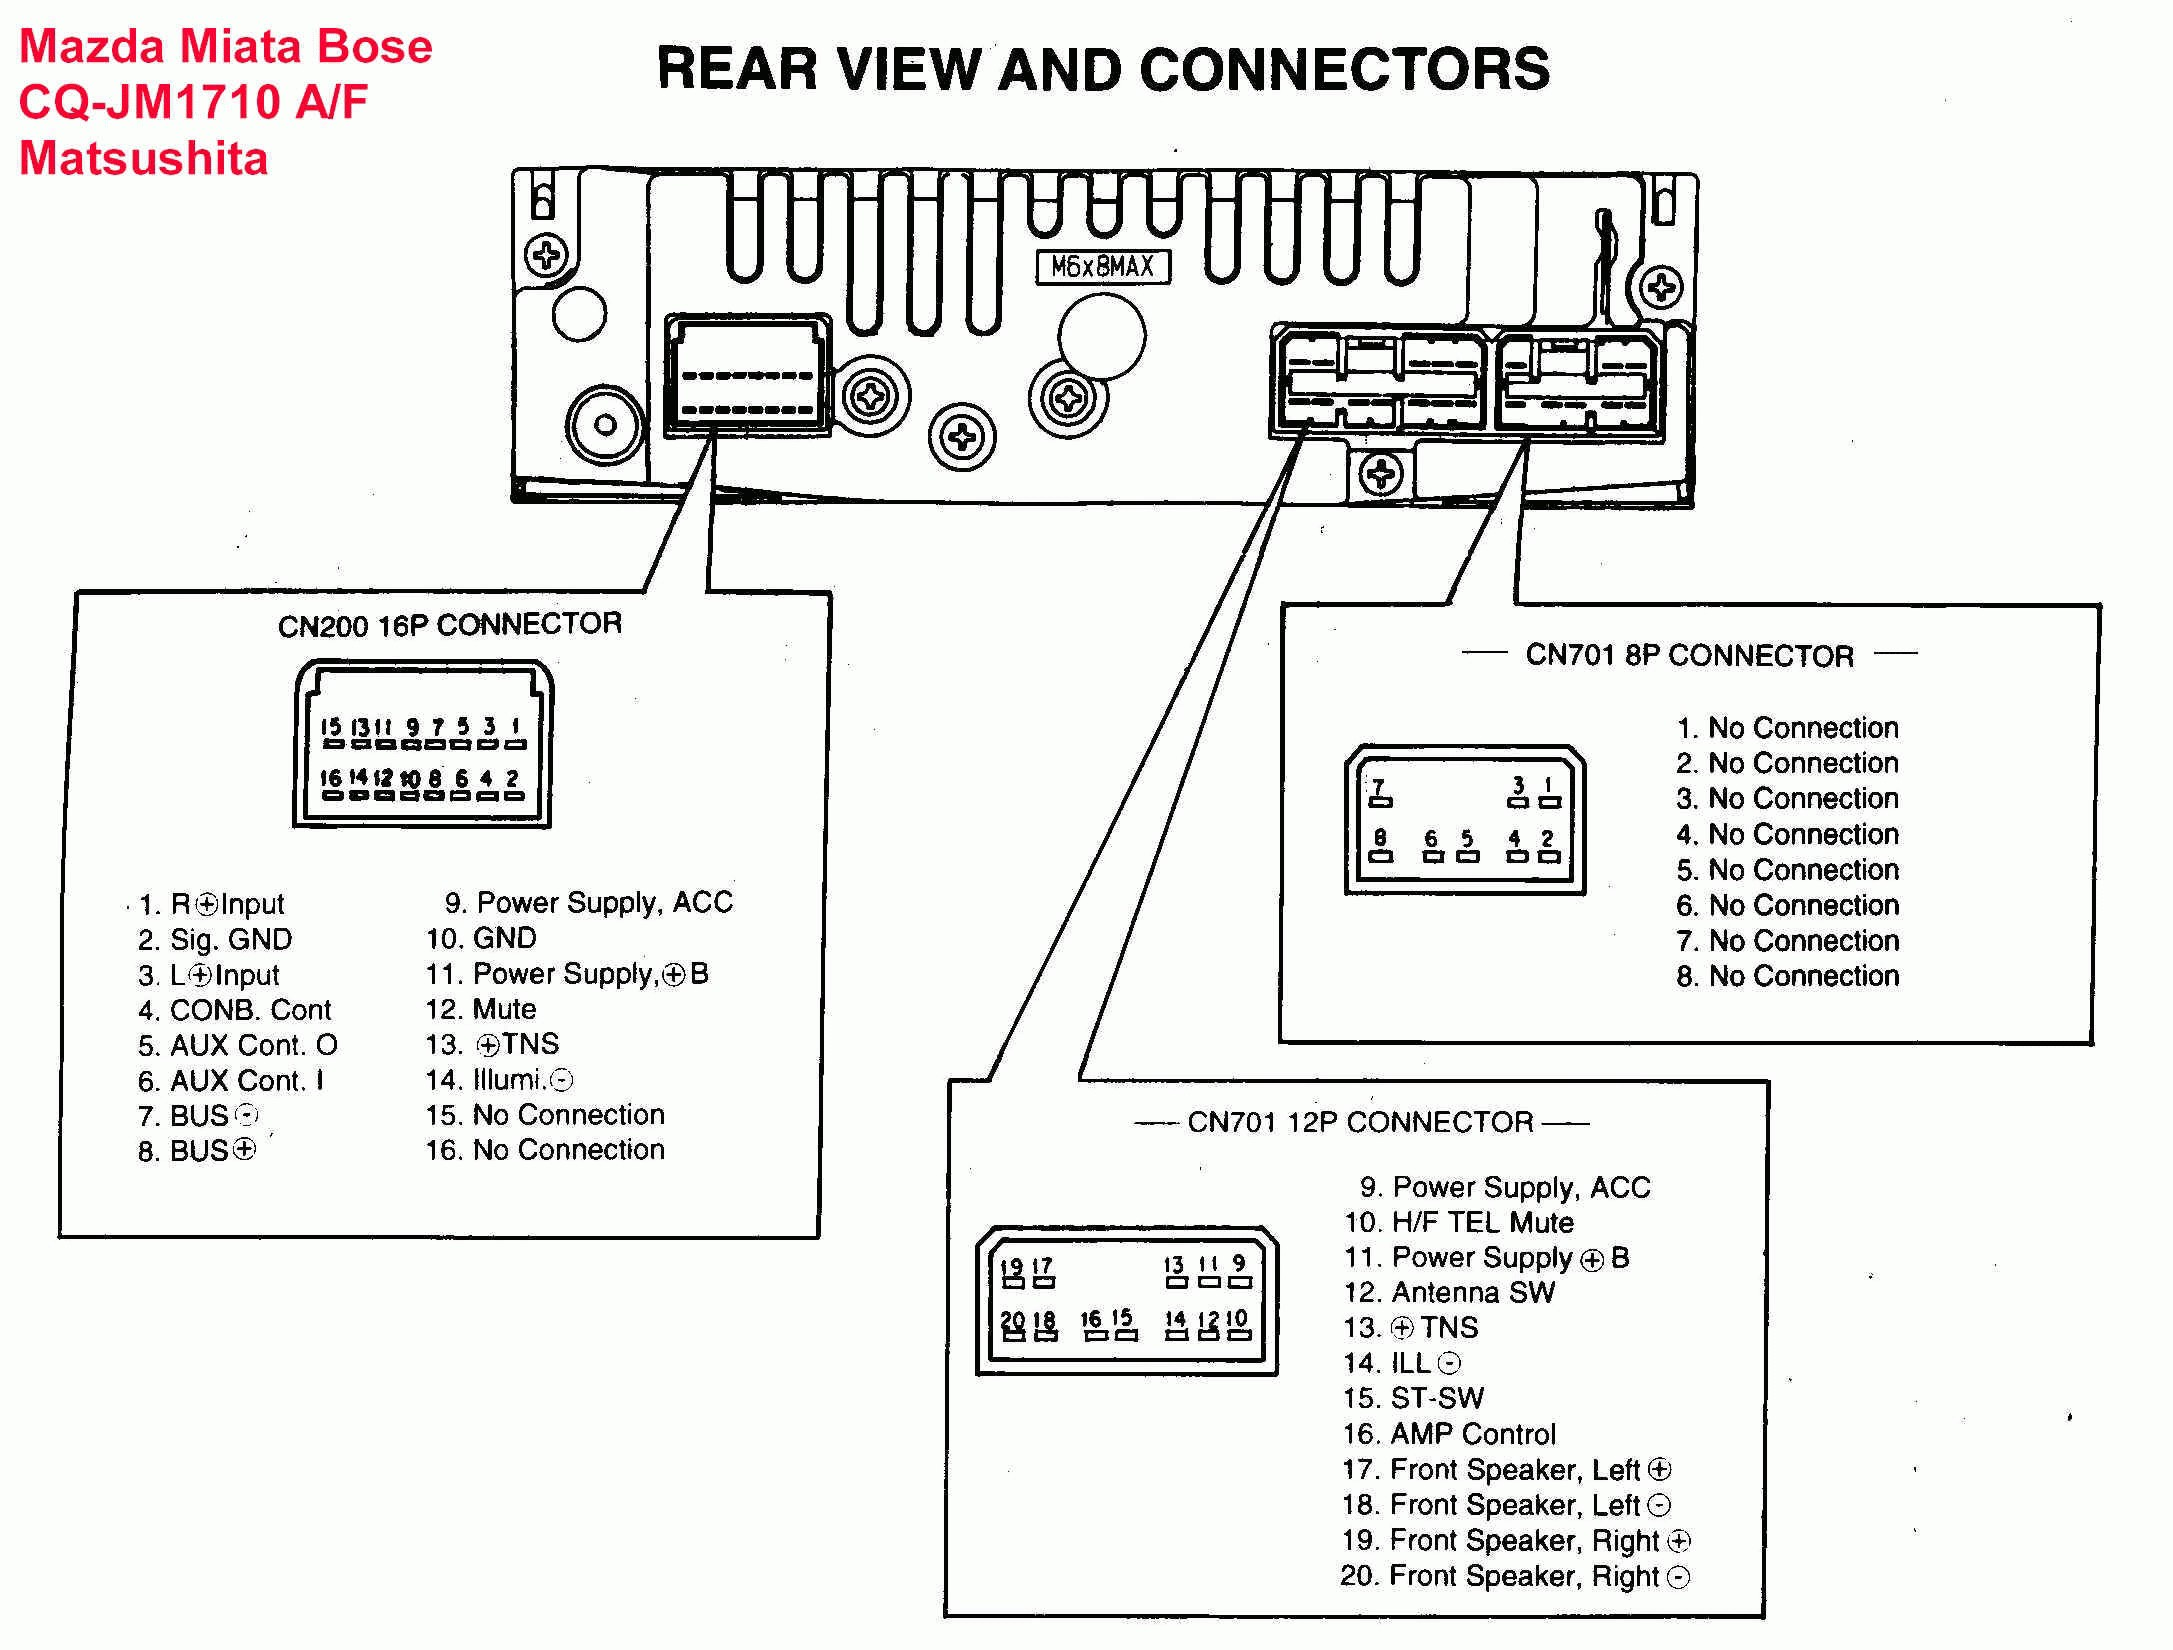 2011 mazda cx 7 stereo wiring diagram share circuit diagramscx 7 stereo wiring diagram wiring diagrams